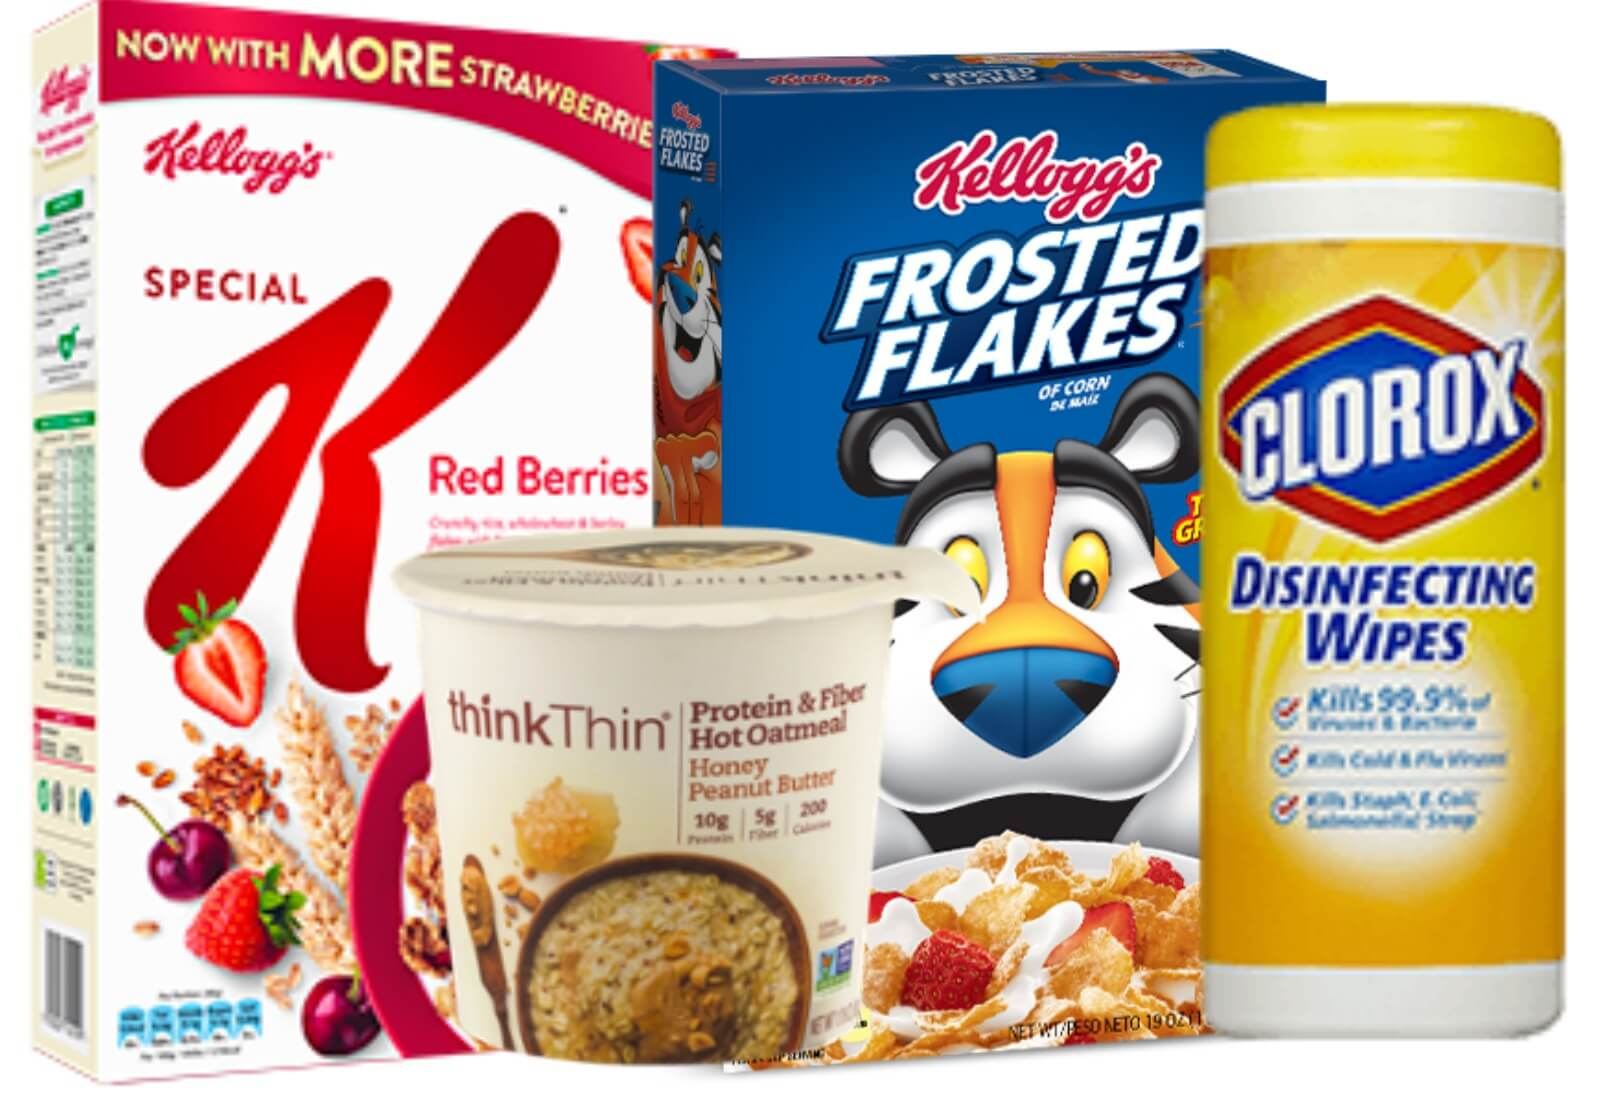 Today's Top New Coupons - Save on Kellogg's, Stayfree